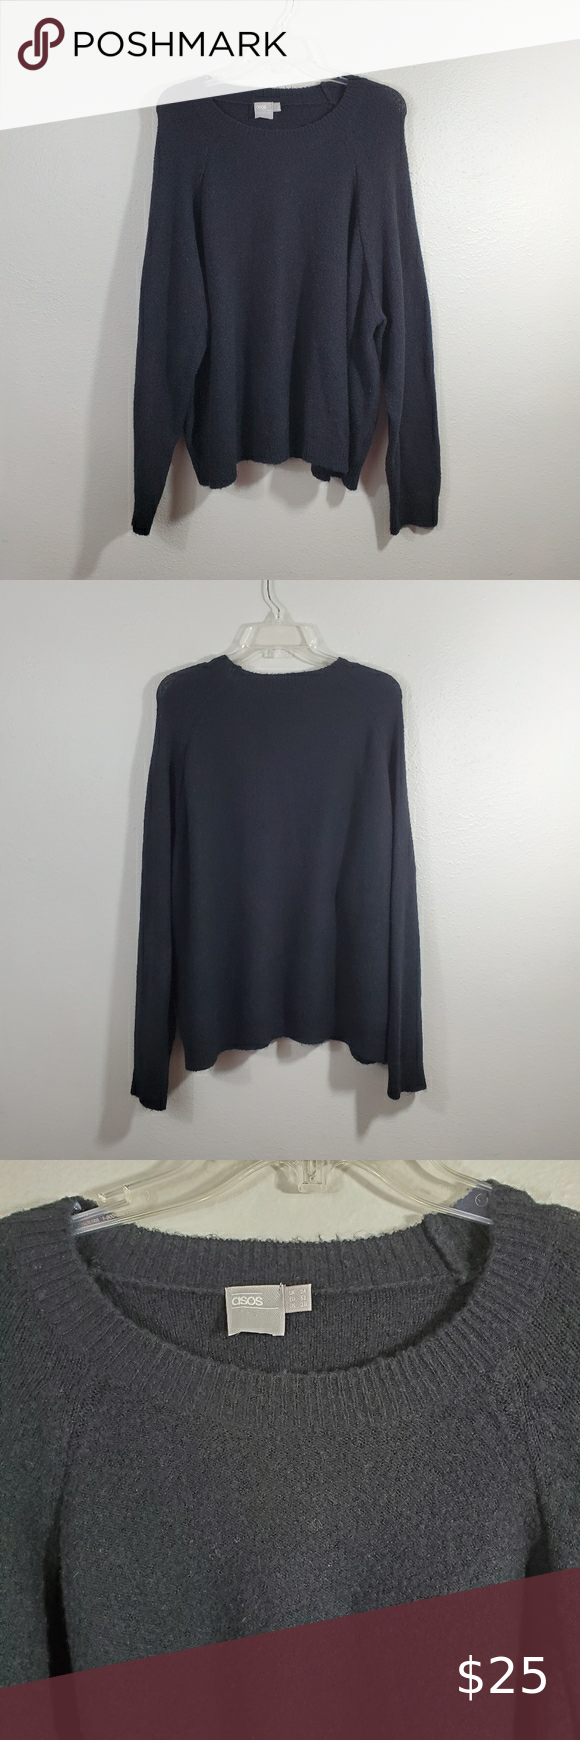 Asos Black Fuzzy Scoop Neck Sweater Plus Size 20 Excellent preowned condition / No flaws.  Size 20. Soft & fuzzy sweater with lots of stretch. Thin & lightweight, not thick & heavy. So comfy & cozy!  -Approximate measurements: 28